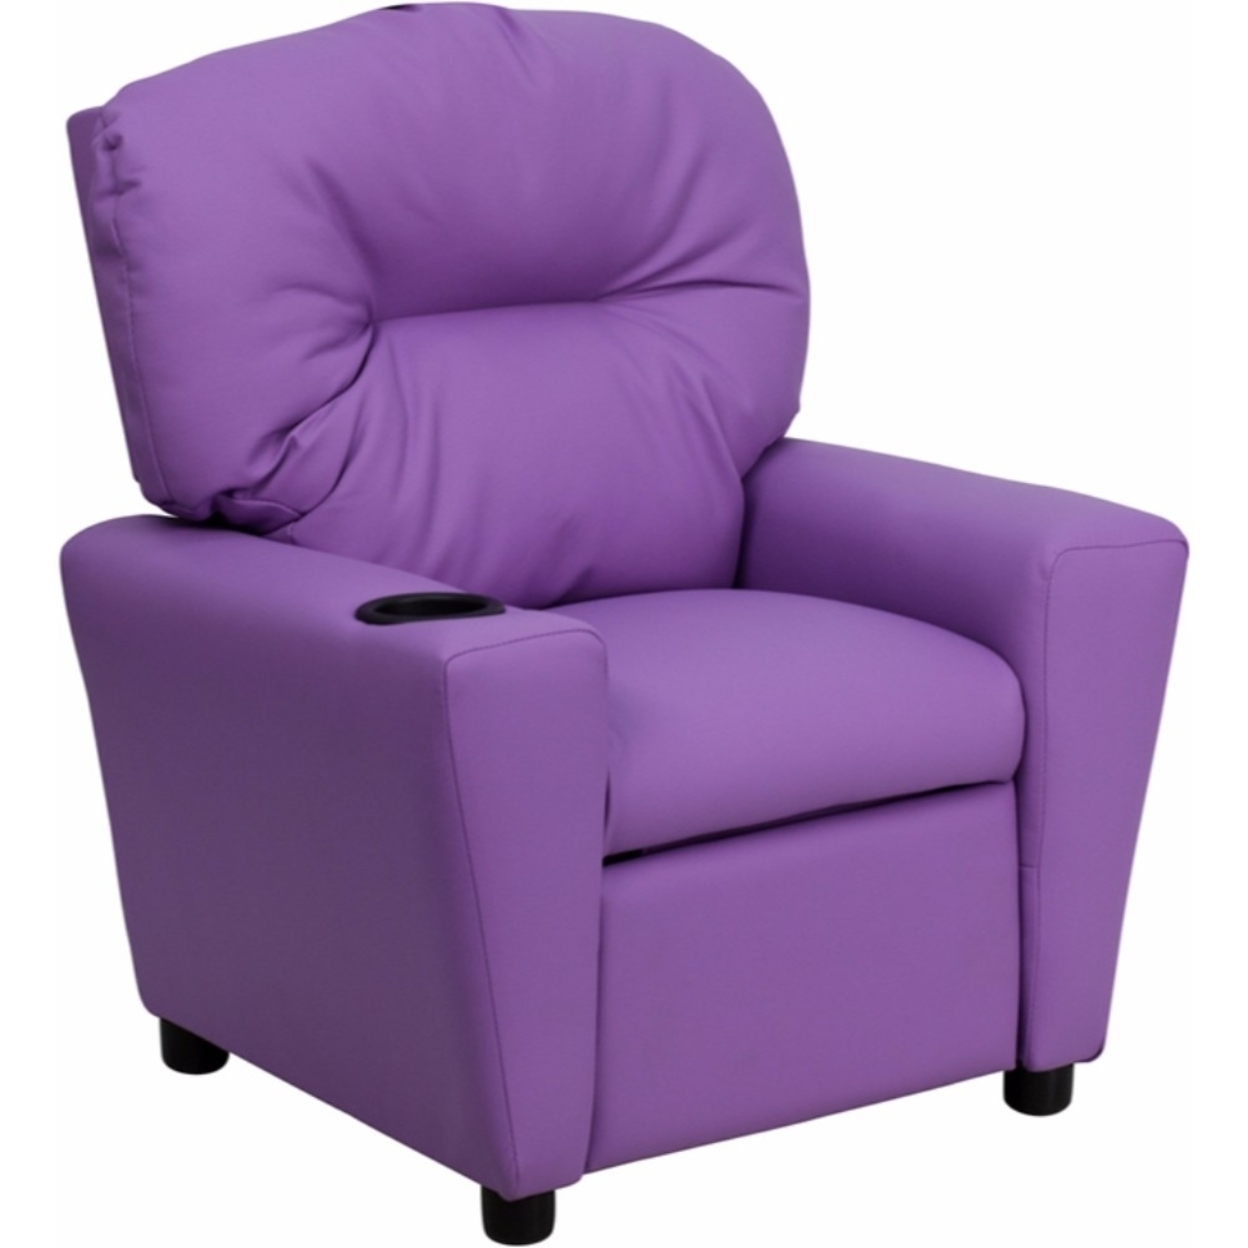 Flash Furniture Contemporary Lavender Vinyl Kids Recliner with Cup Holder [863-Bt-7950-Kid-Lav-Gg] 59e46011e224613cc0691993